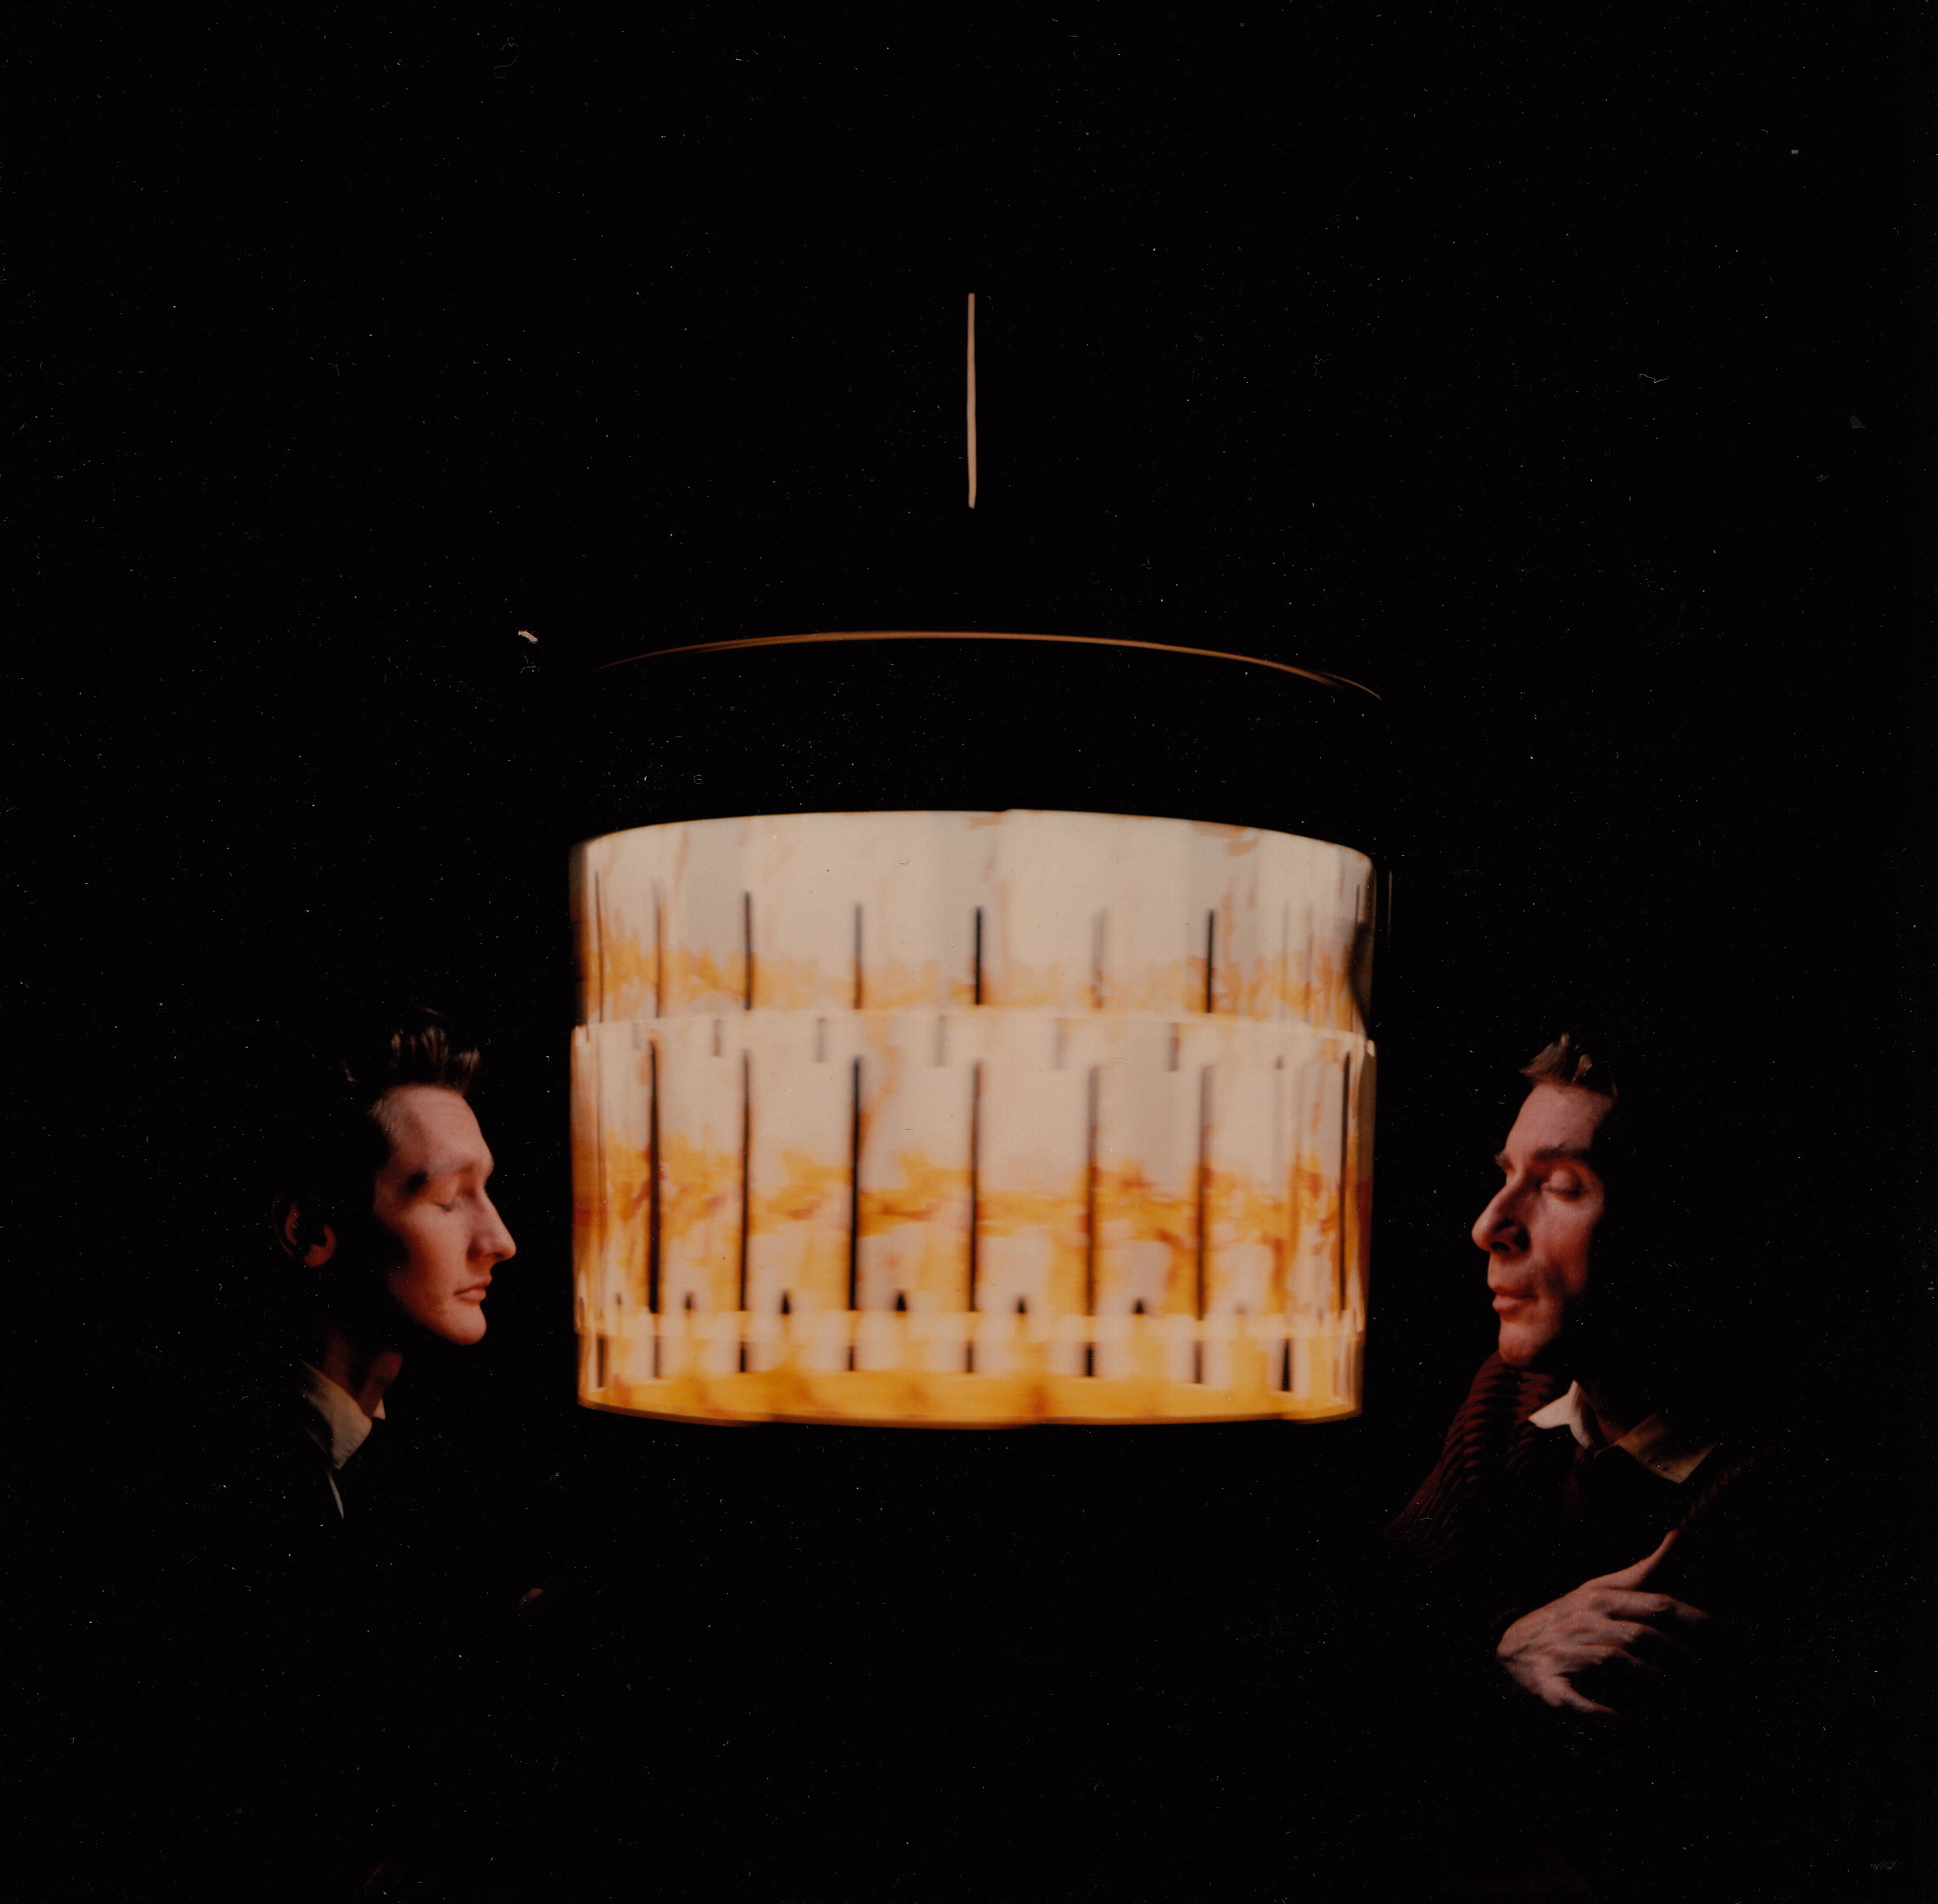 Photograph of Brion Gysin and Ian Sommerville sitting on either side of a dream machine. Date and photographer unknown. (MSS 11975. Tunstall Fund, 2000/2001. Image by Petrina Jackson)